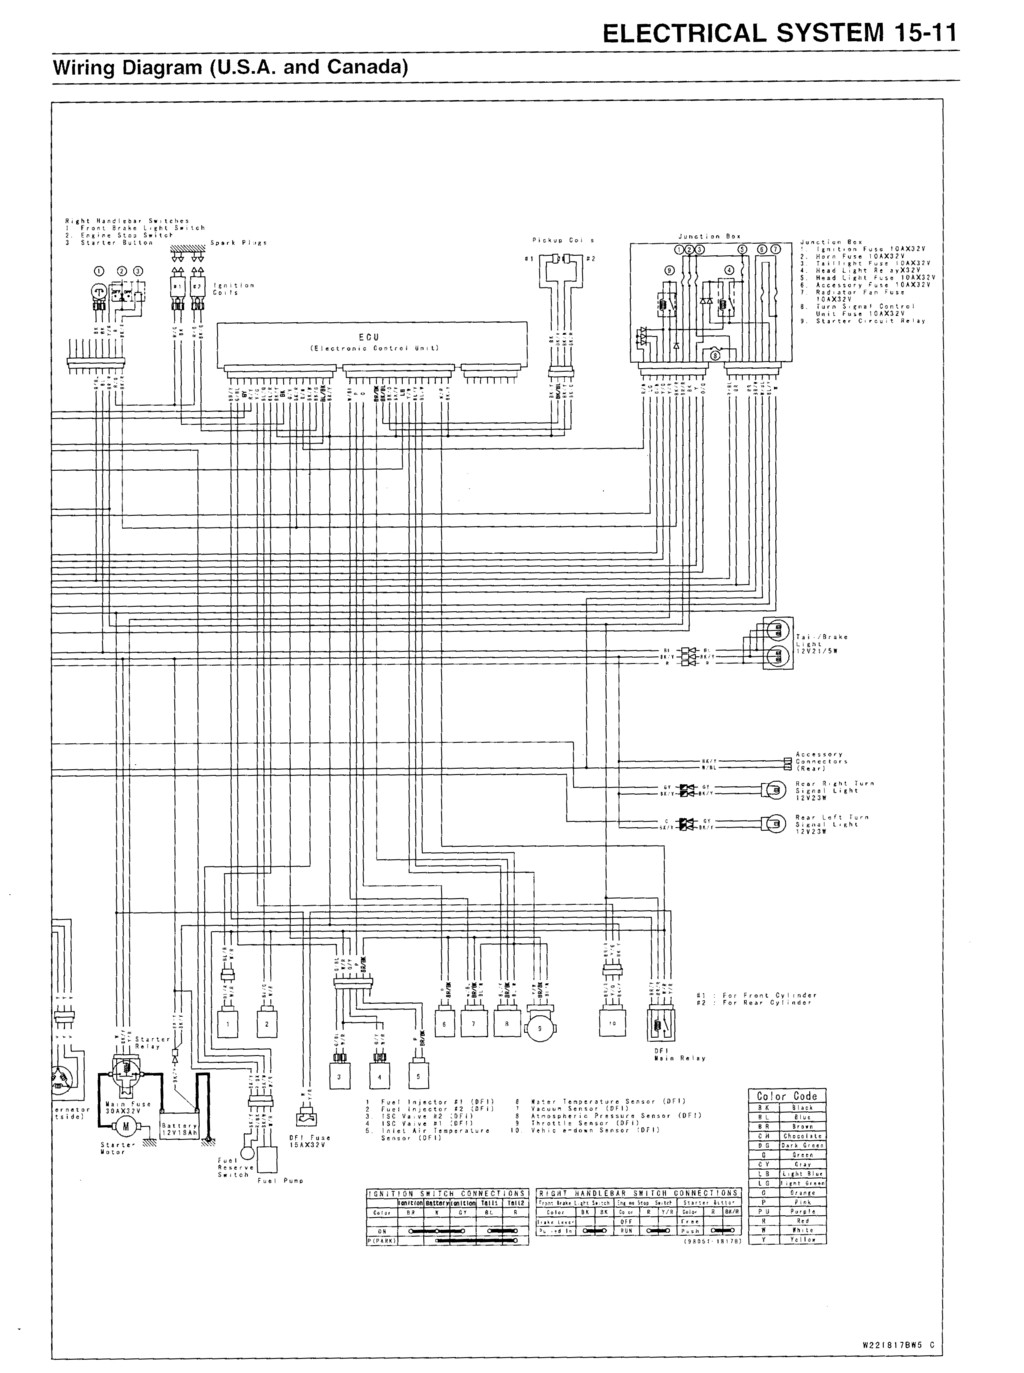 Electrical Wiring Color Code Canada